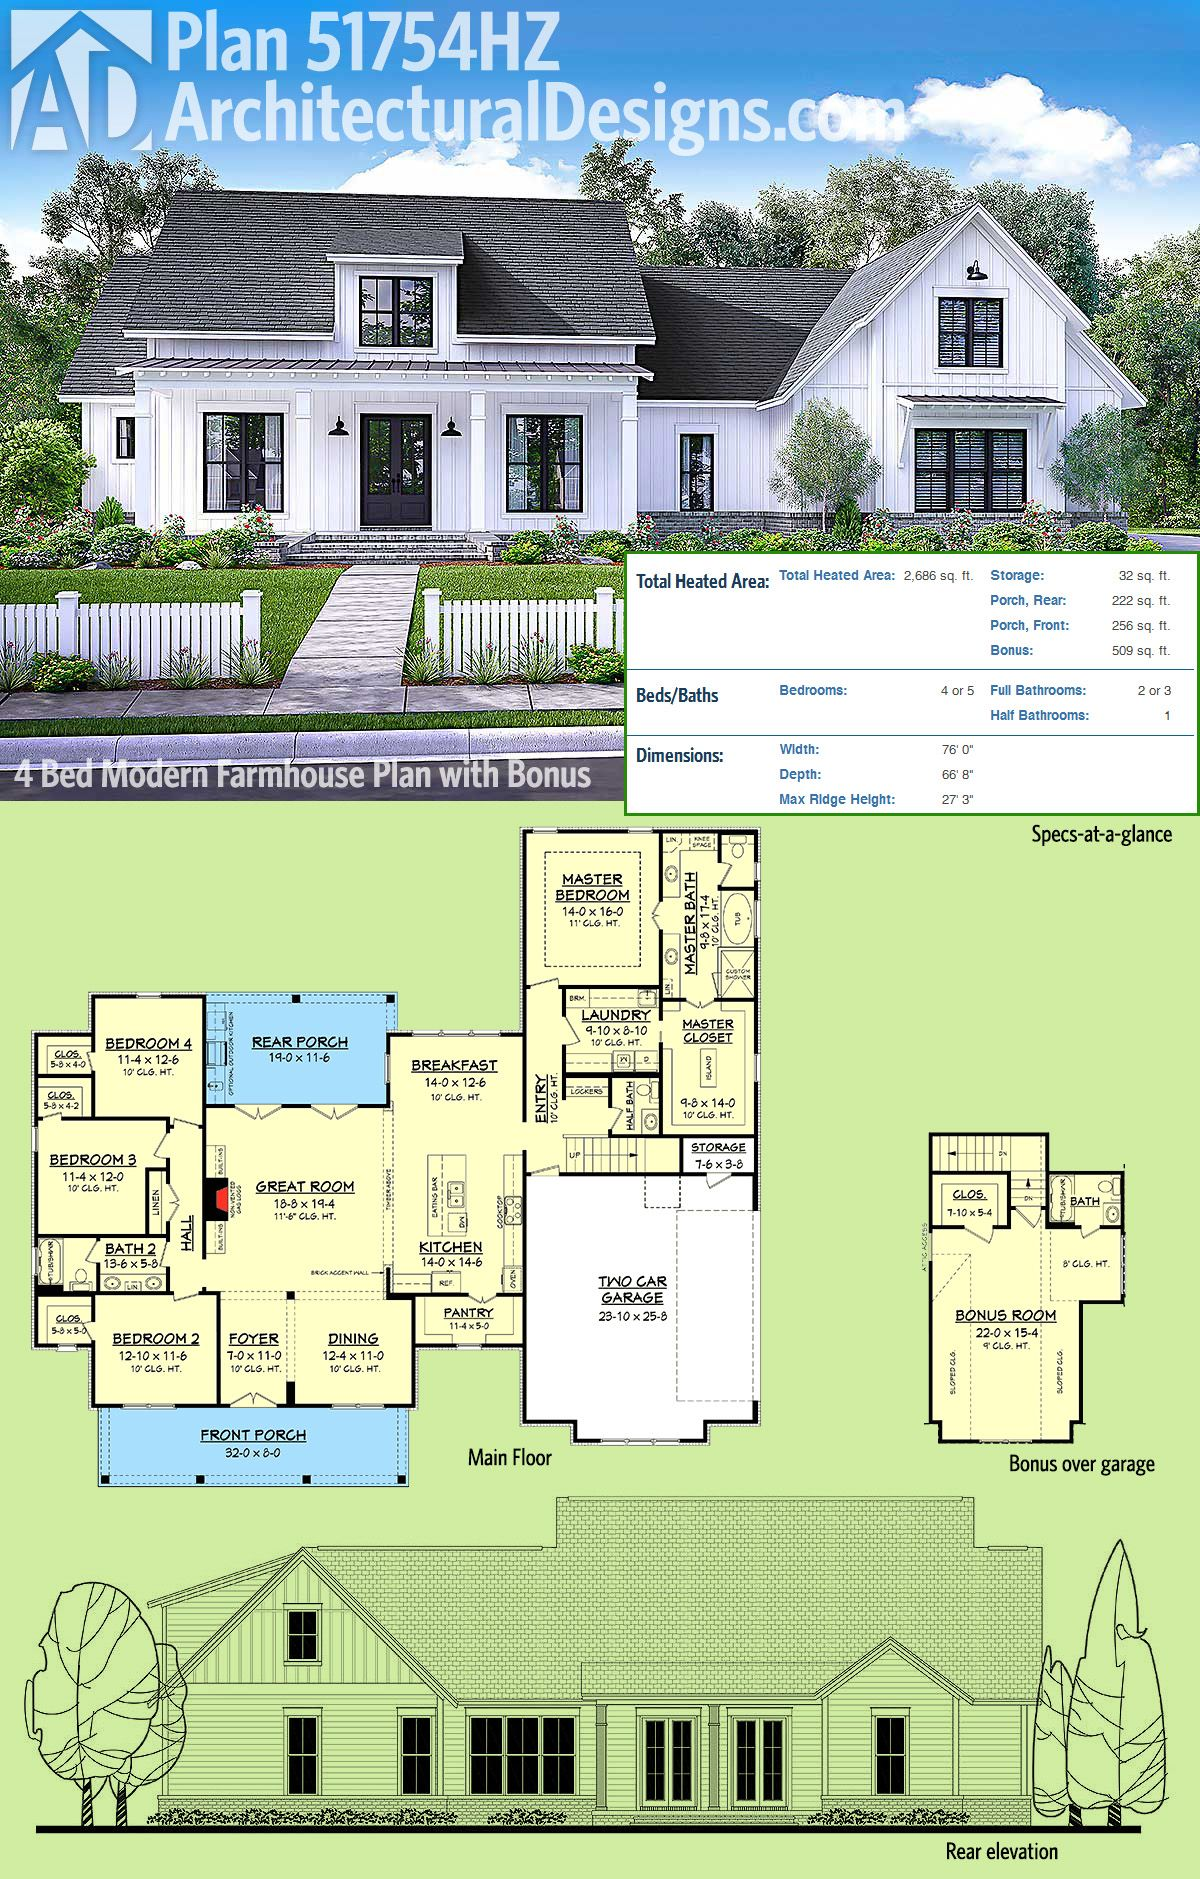 Architectural designs modern farmhouse plan 51754hz gives you over 2600 square feet of living space plus a bonus room over the garage giving you a great